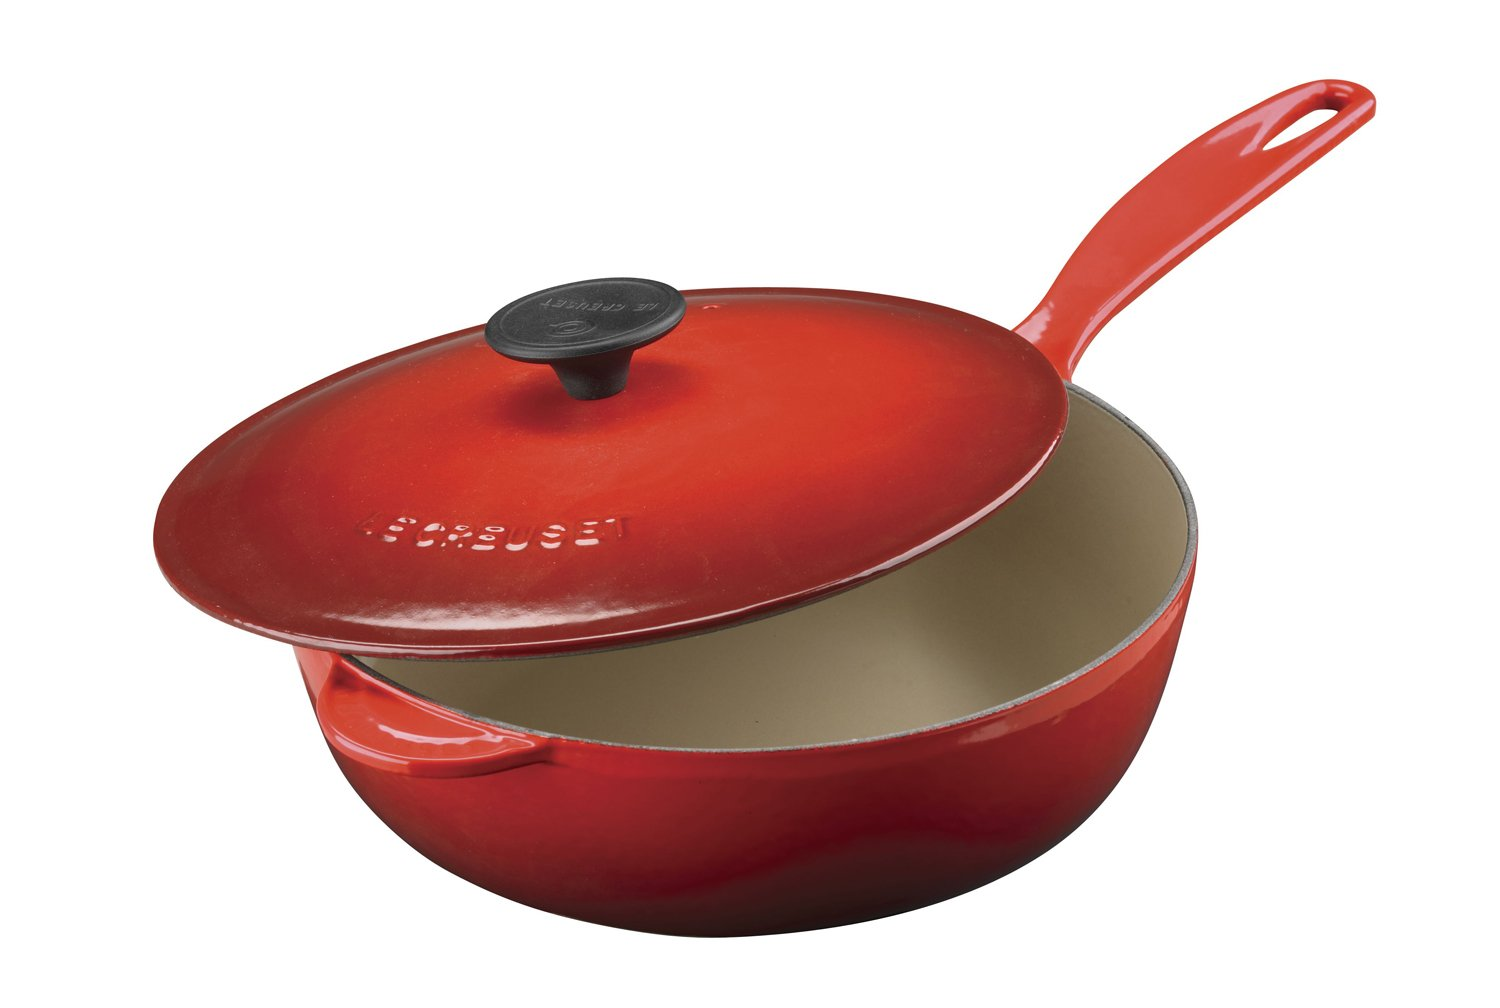 Le Creuset Enameled Cast-Iron 2-1/4-Quart Saucier Pan, Cerise (Cherry Red)